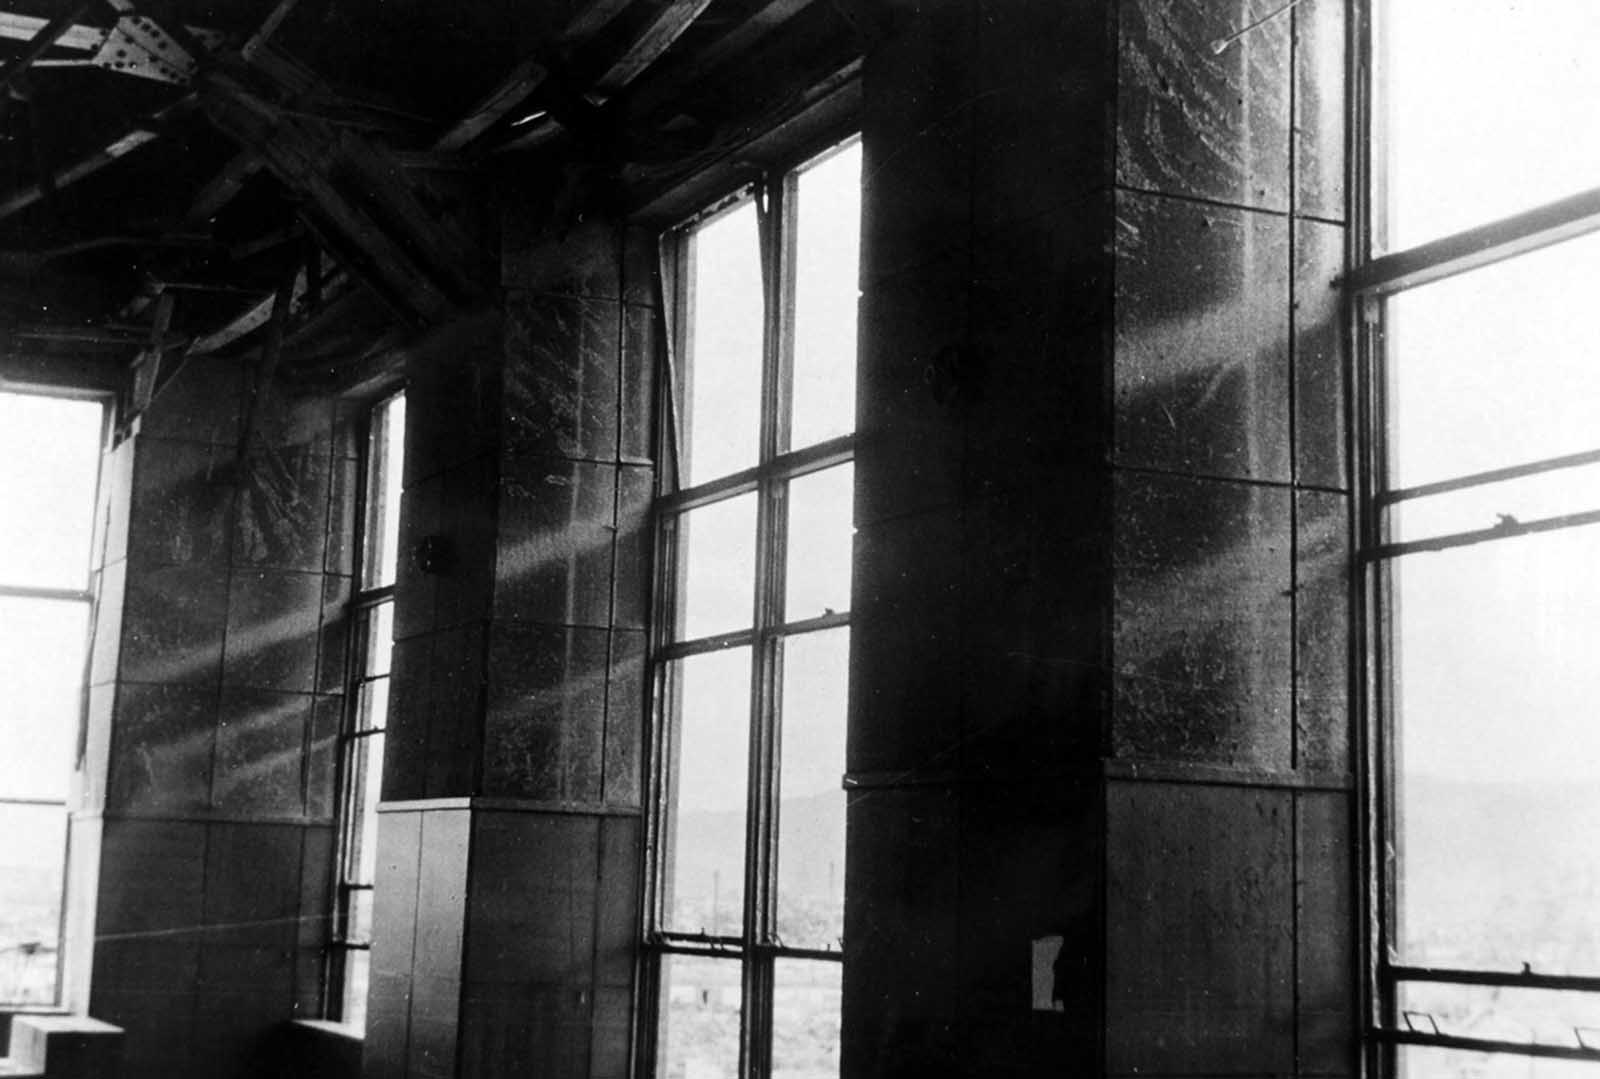 Post office savings bank, Hiroshima. Shadow of window frame left on fiberboard walls made by the flash of the detonation. October 4, 1945.